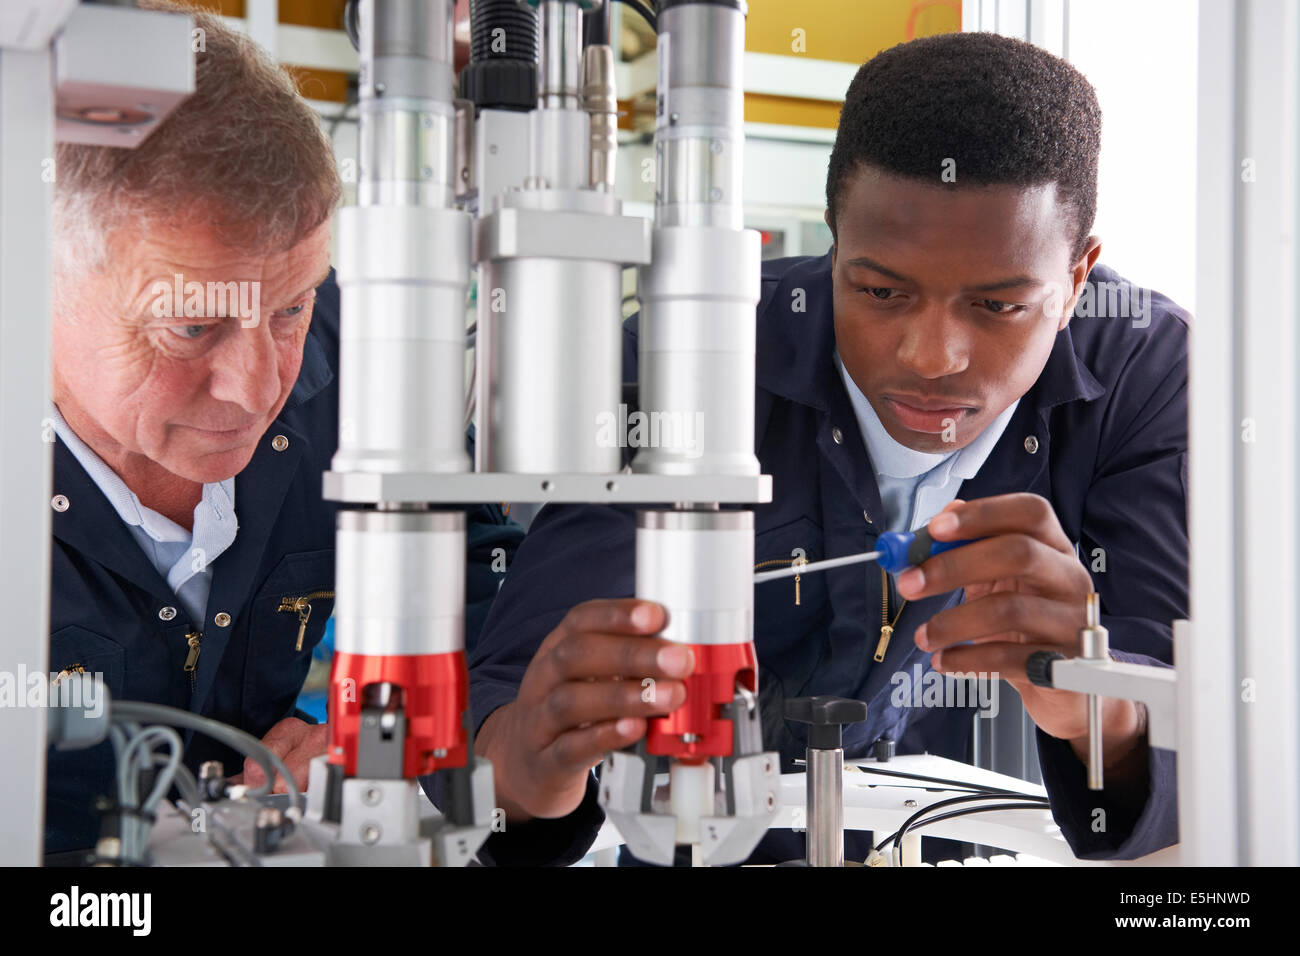 Engineer And Apprentice Working On Machine In Factory - Stock Image